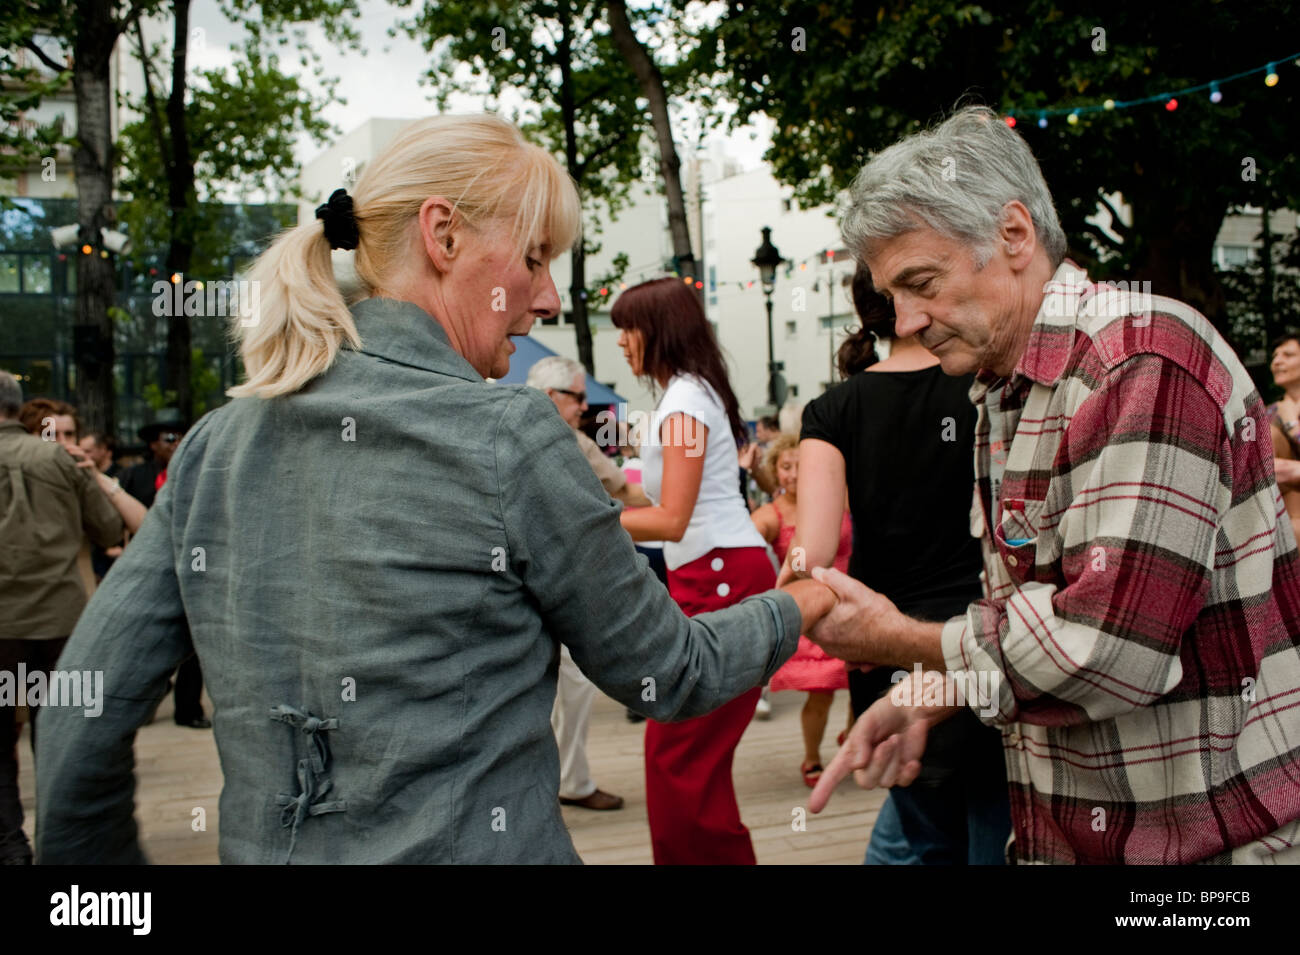 Paris, France, French Senior Adult Couples in 'Rock n Roll' Style, Street Dancing, at 'Paris Plages' - Stock Image